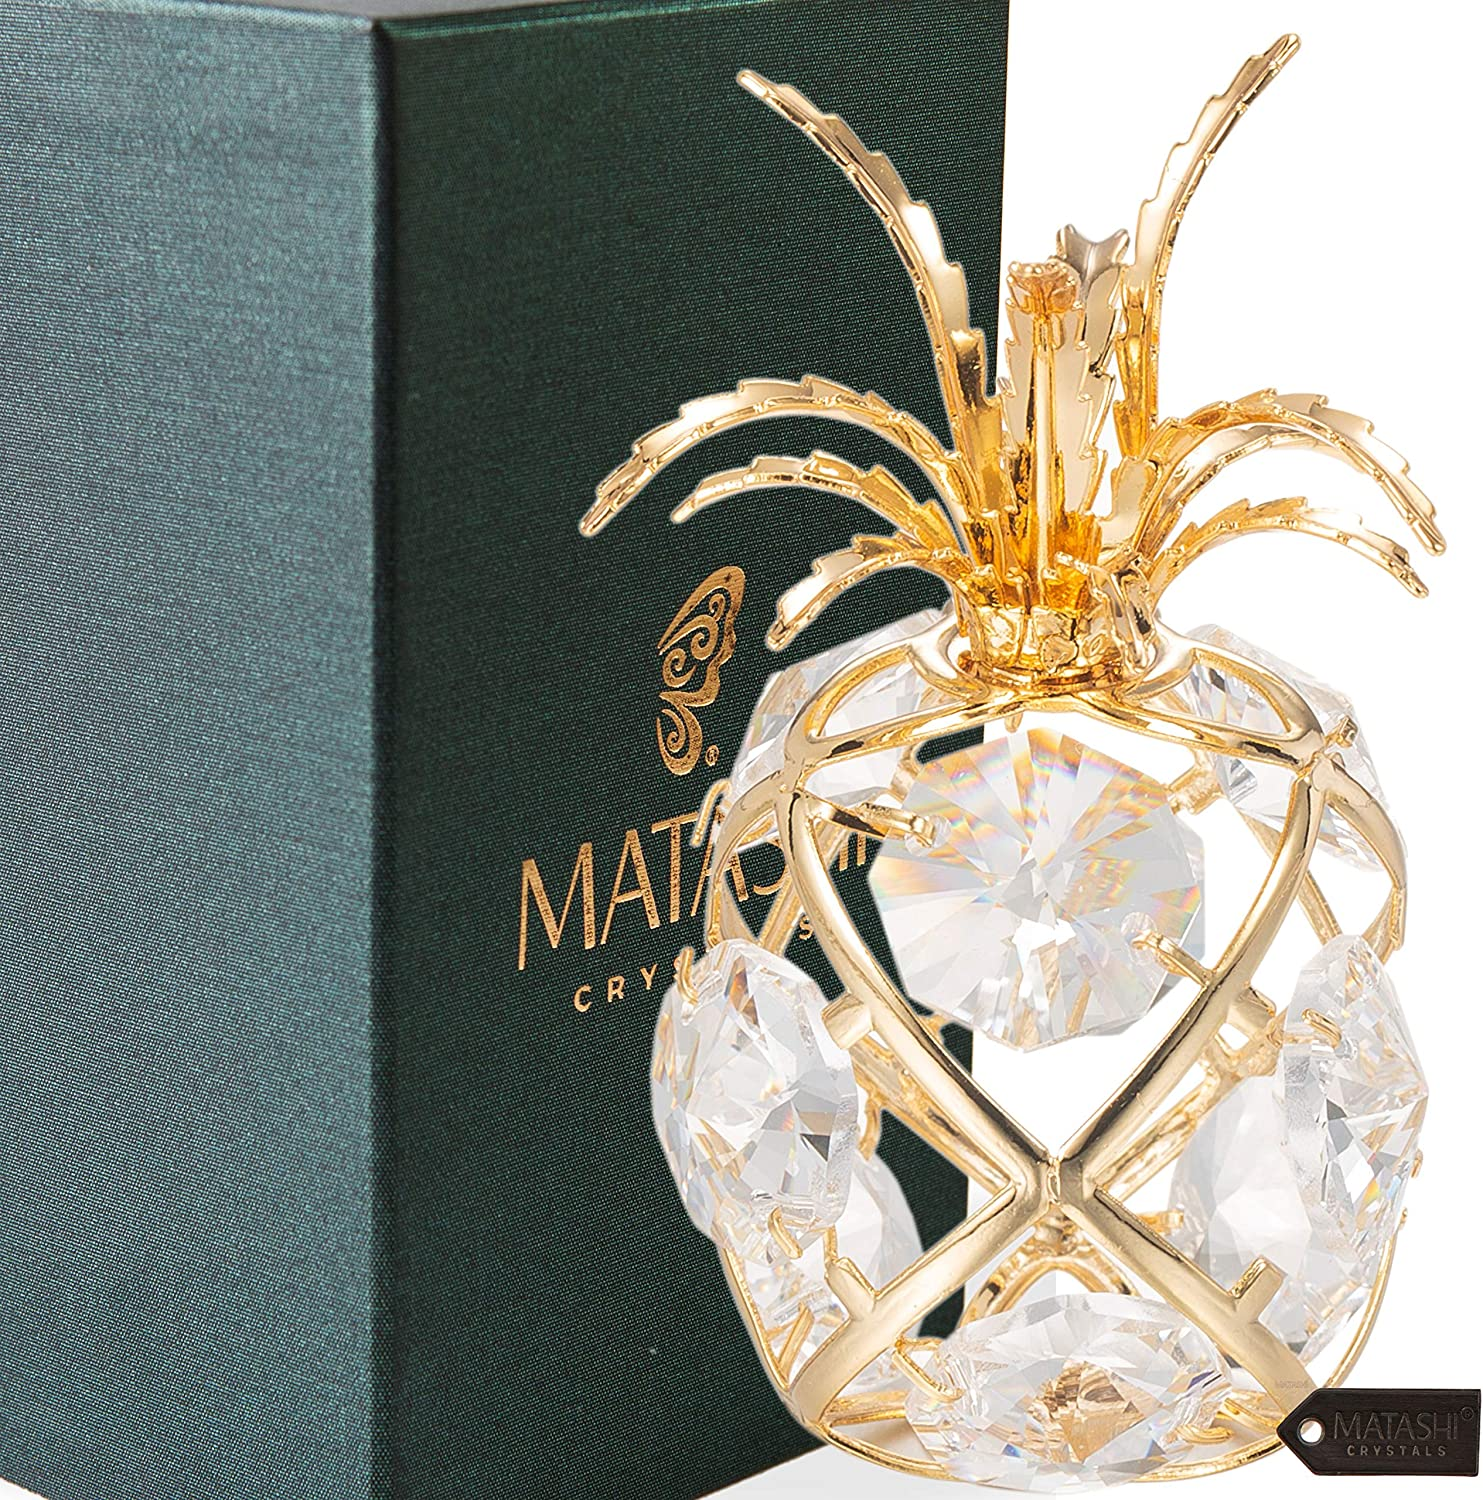 Matashi 24K Gold Plated Mini Pineapple Ornament with Clear Crystals